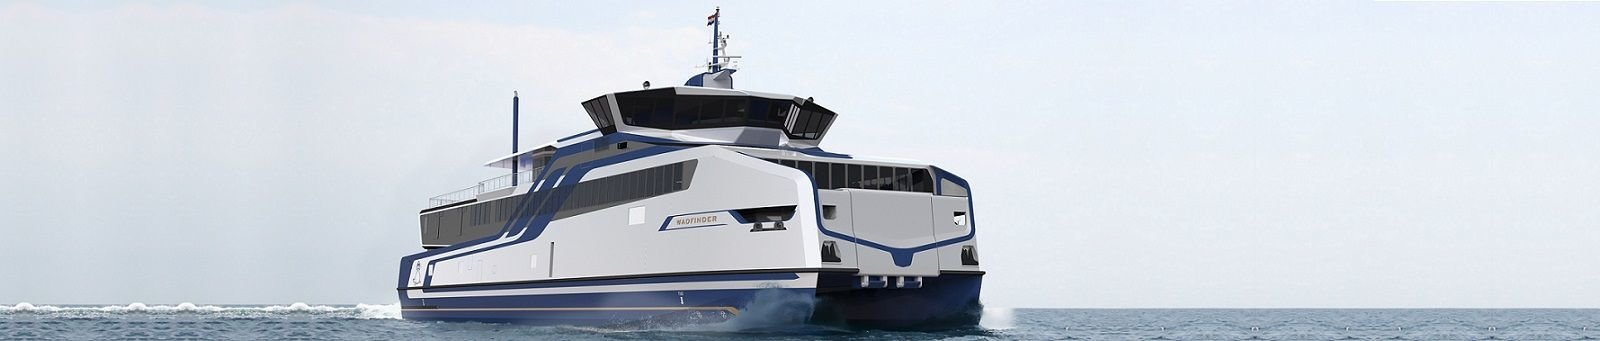 H&H acquires contract for two 70m Aluminium LNG fuelled RoPax ferries